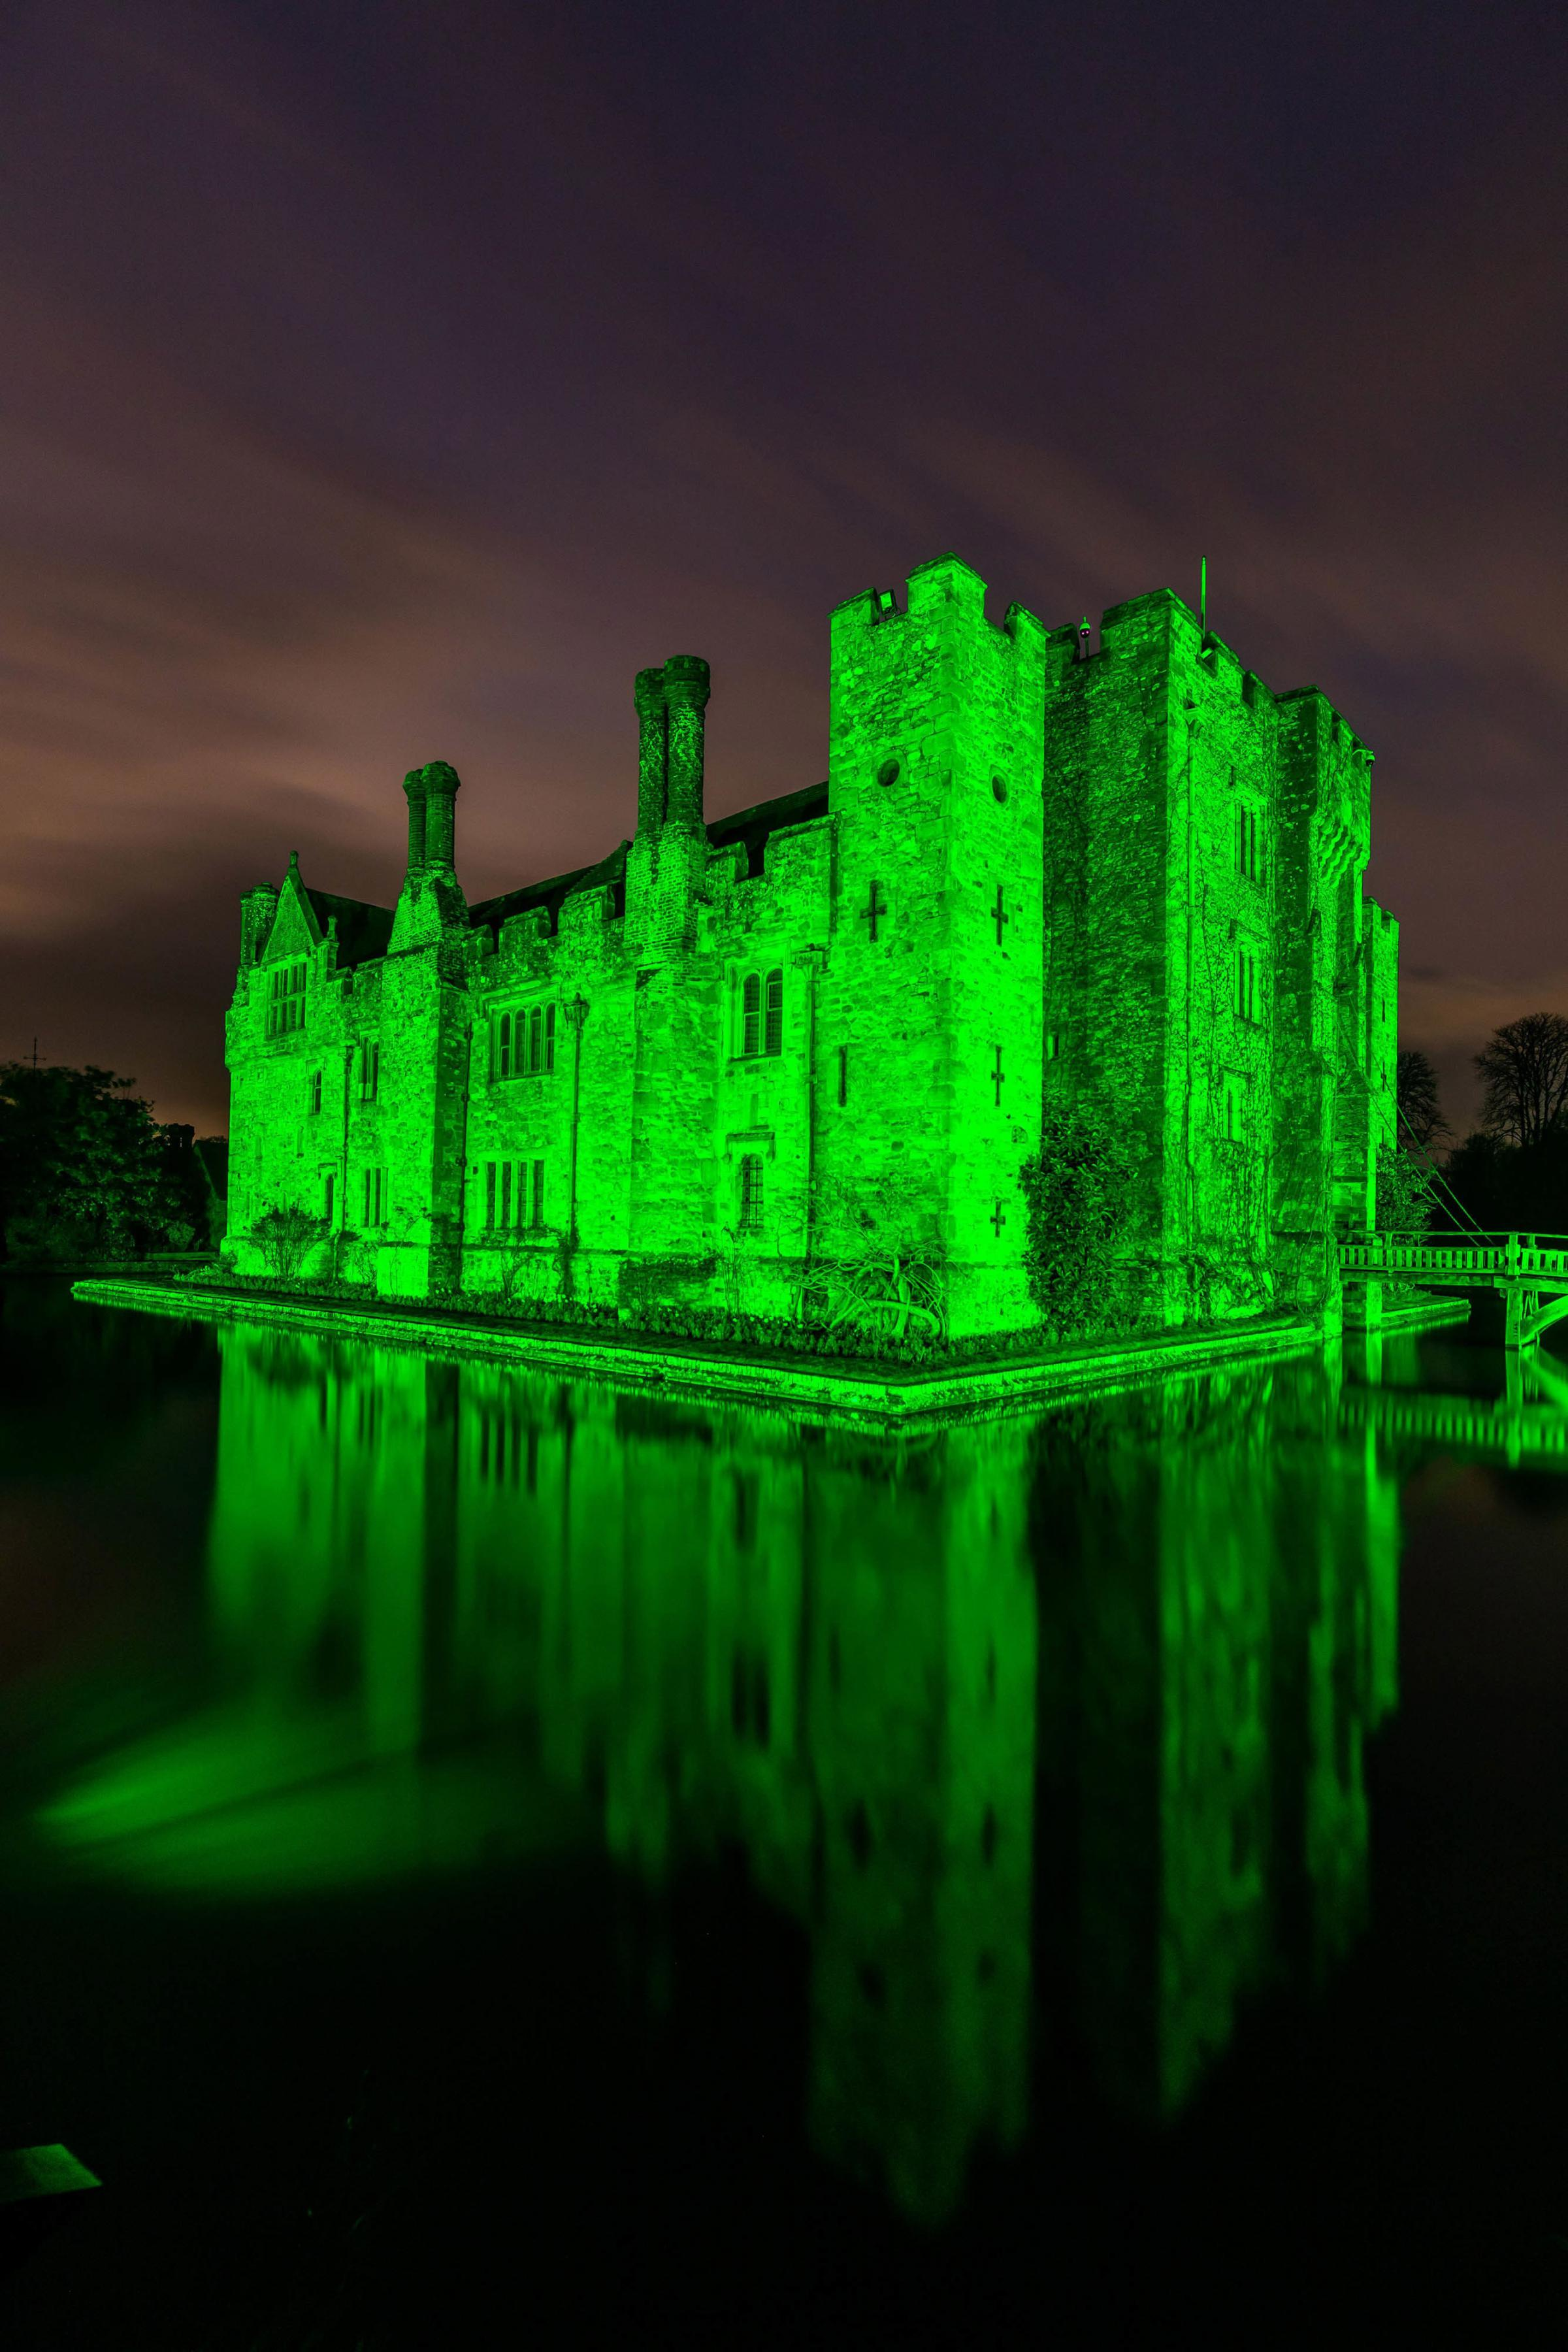 Hever Castle in Kent joins Tourism Irelands Global Greenings campaign to mark St Patrick's Day Picture: CIARAN MCCRICKARD/PA